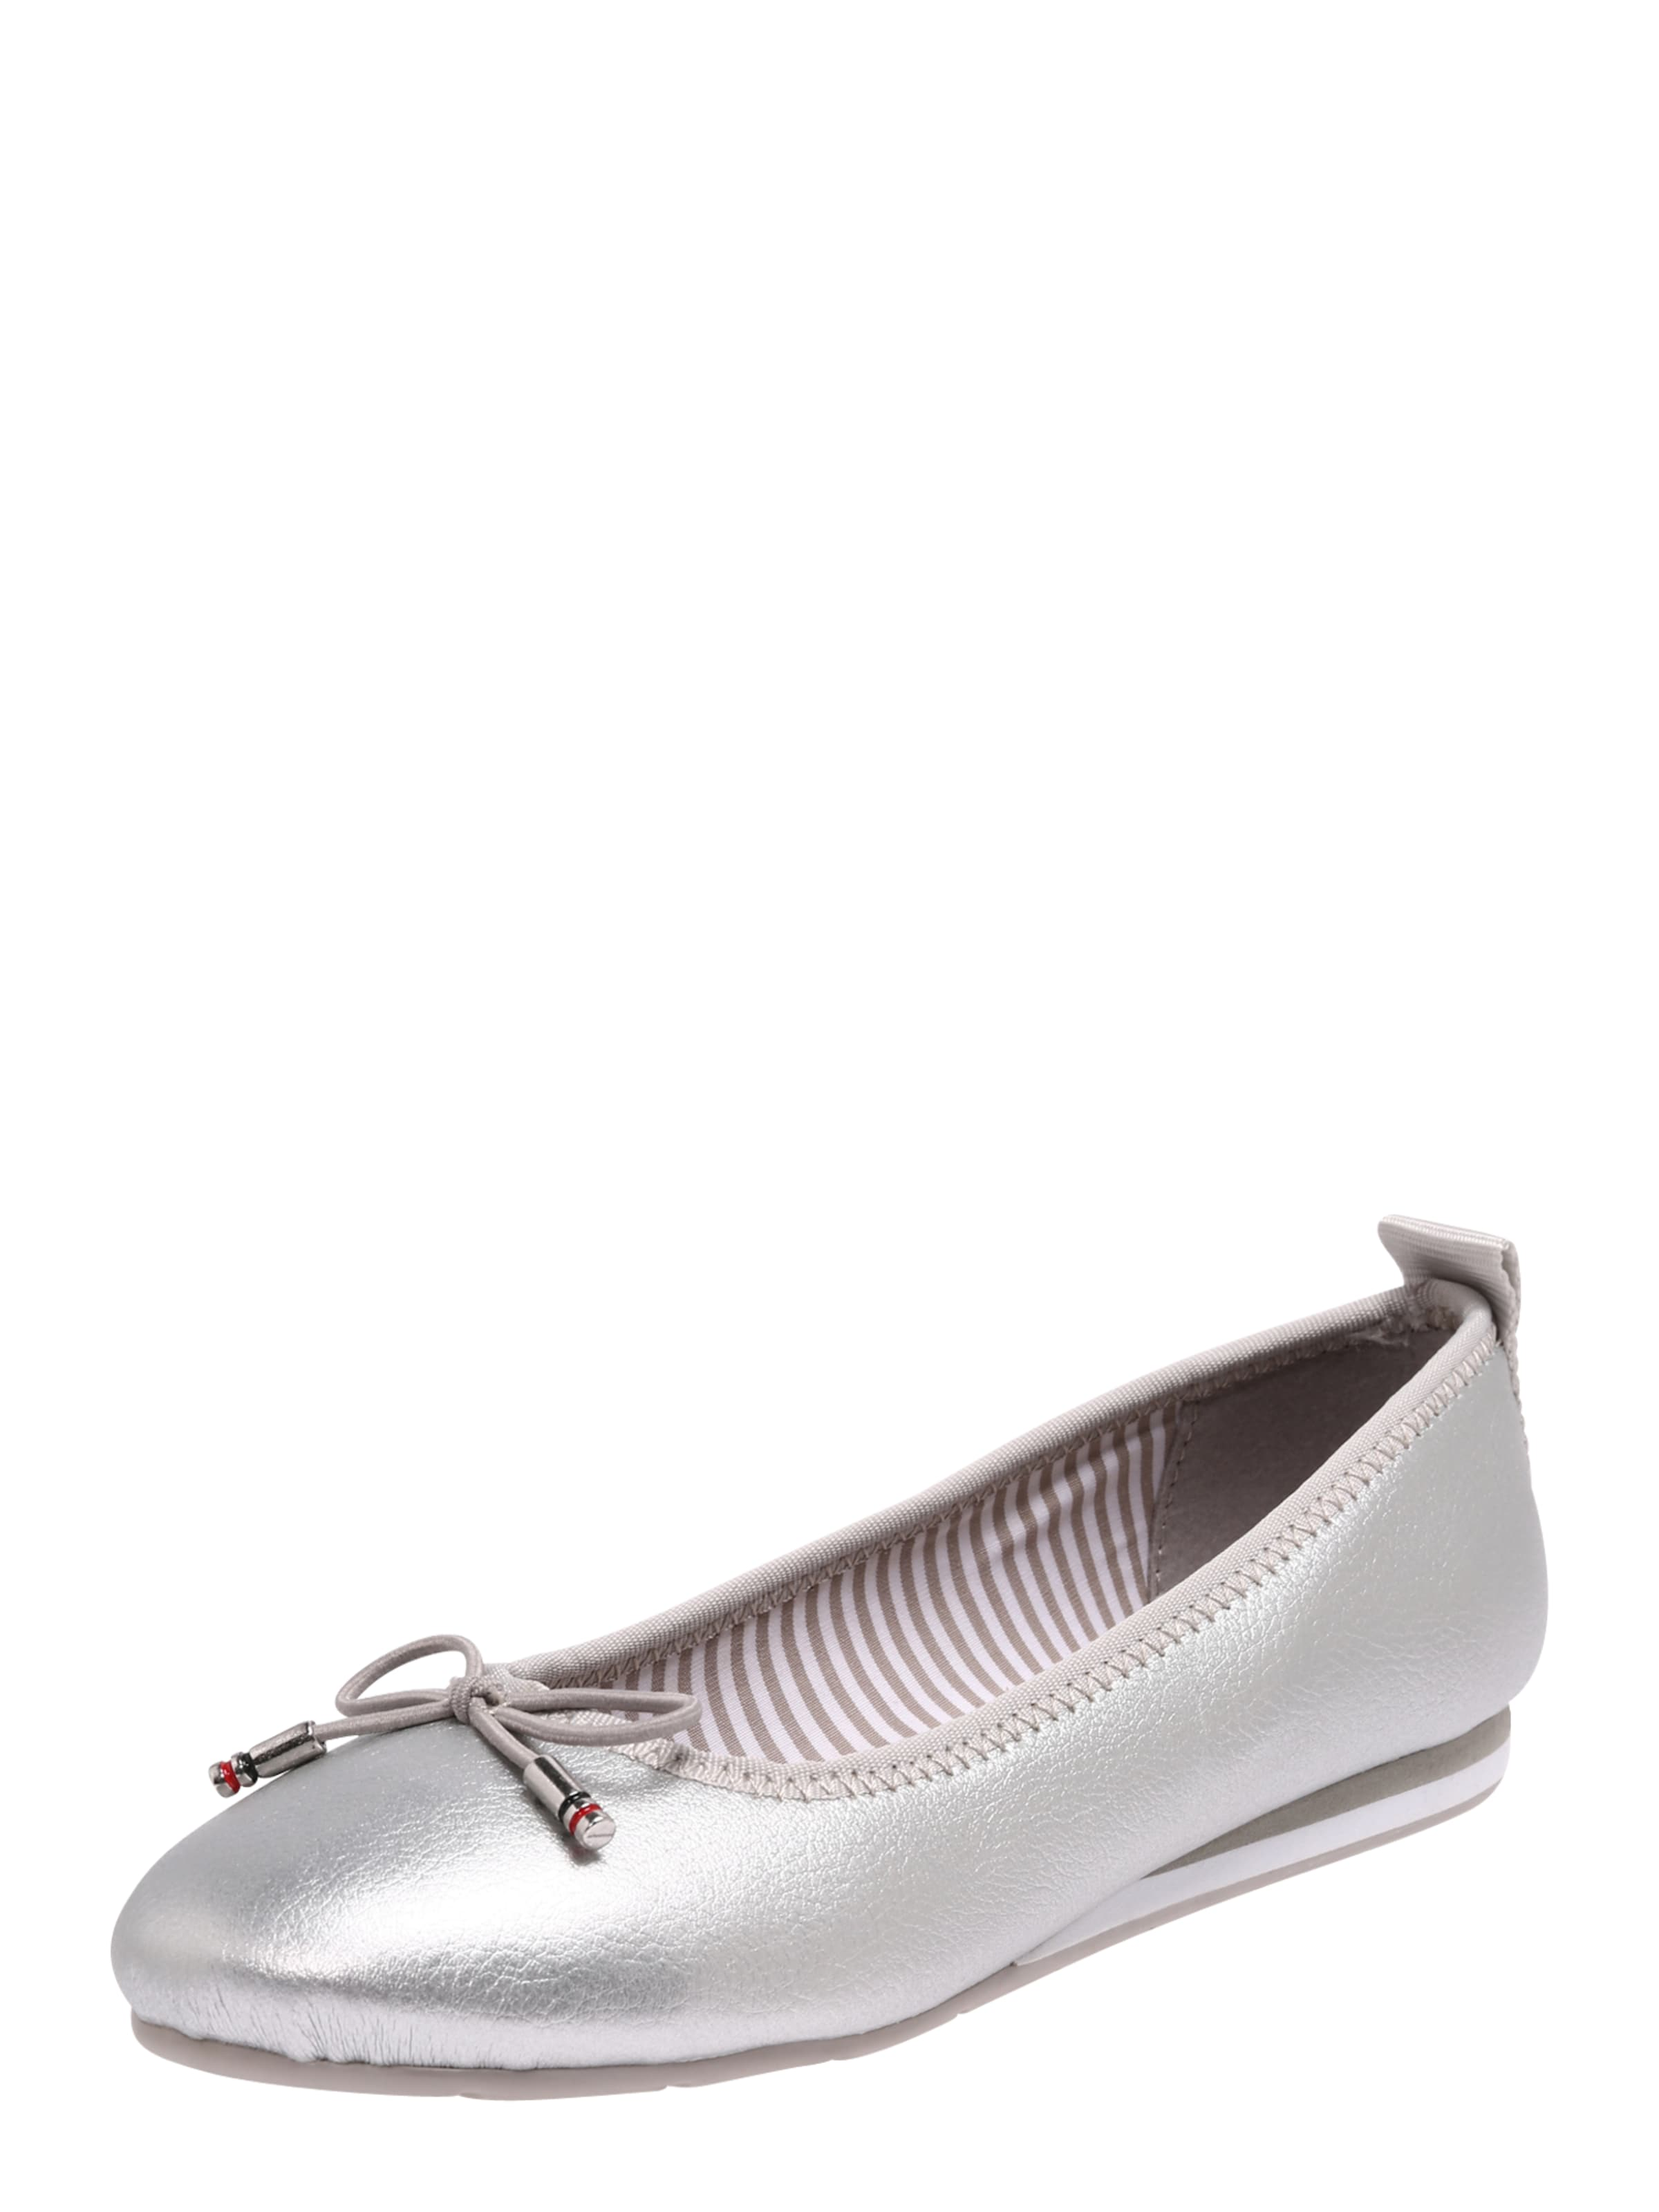 Tailor Tom In Silber Tailor Tailor In Ballerina Tom Ballerina Tom Ballerina In Silber QsrdhCtxB